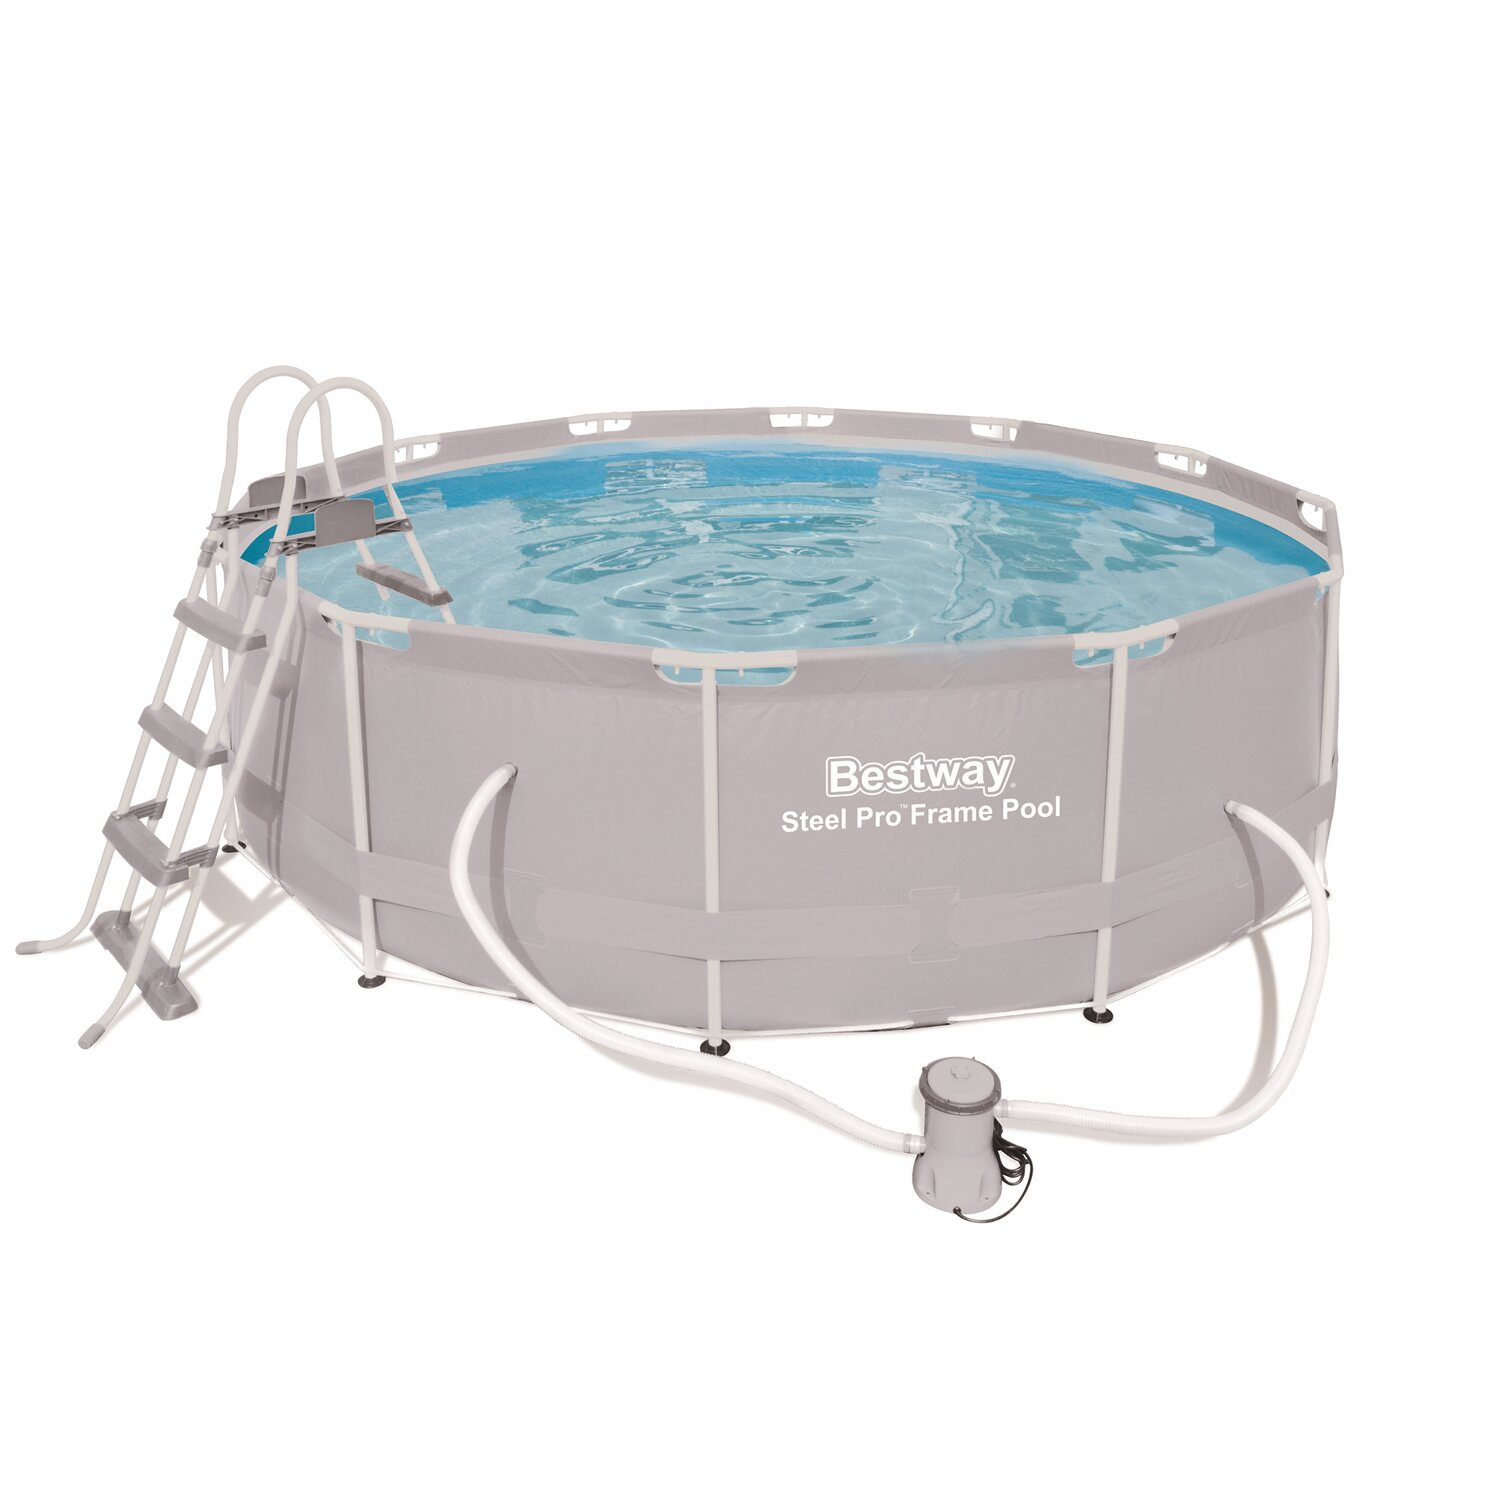 Bestway steel pro frame pool set 366 cm x 100 cm for Bestway pool bei obi